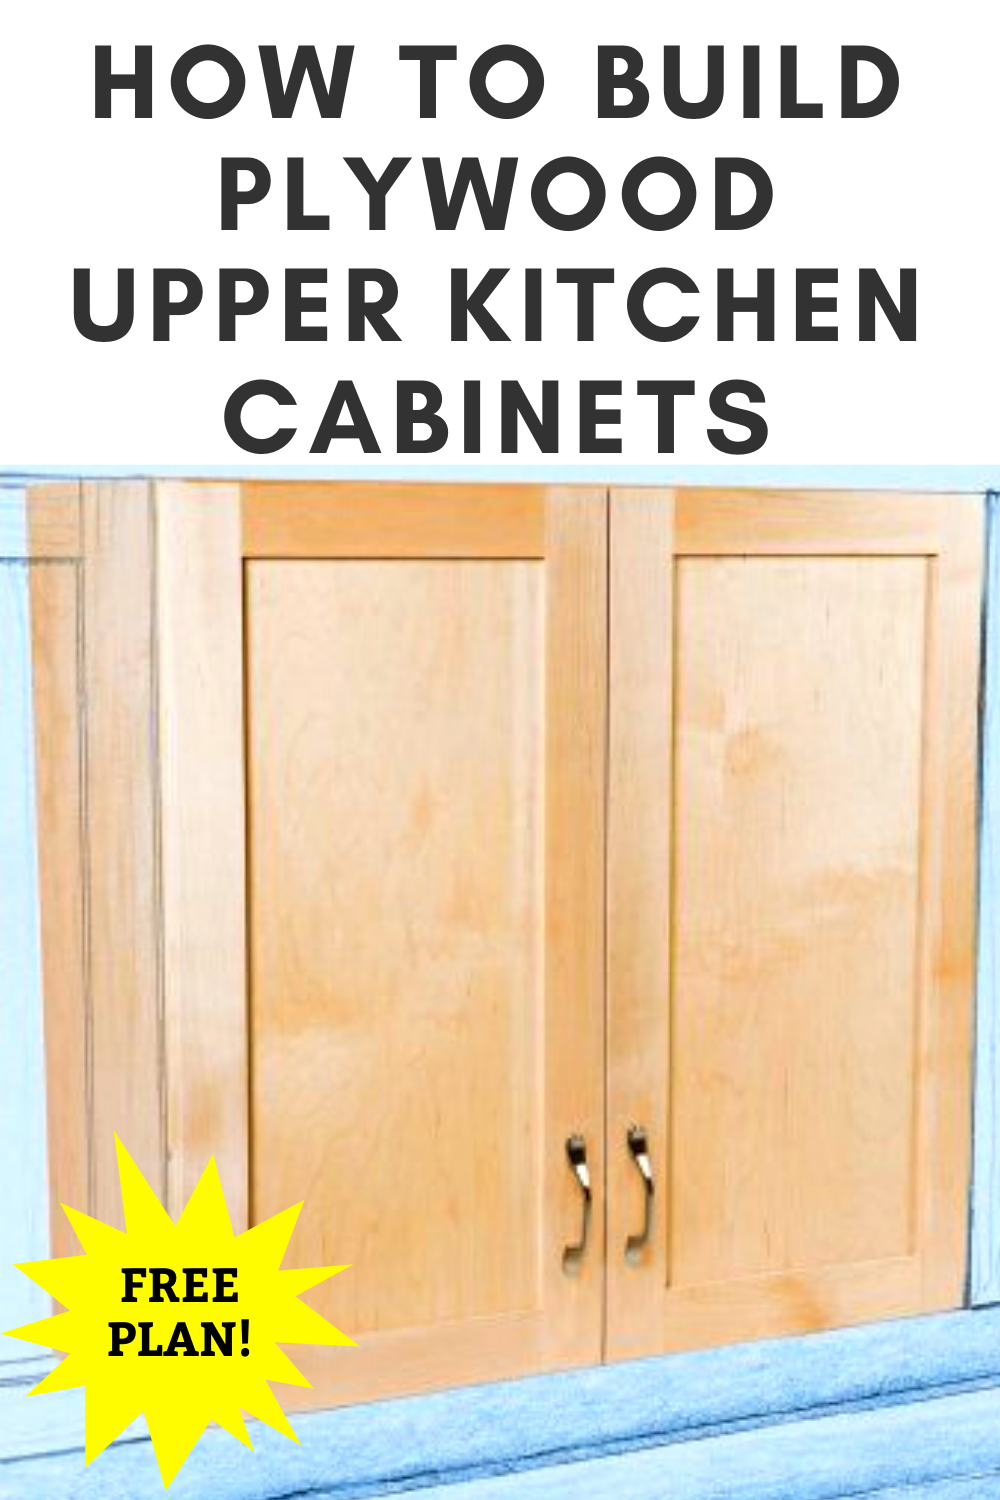 How To Build Plywood Upper Kitchen Cabinets In 2020 Upper Kitchen Cabinets Building Kitchen Cabinets Woodworking Kitchen Cabinets